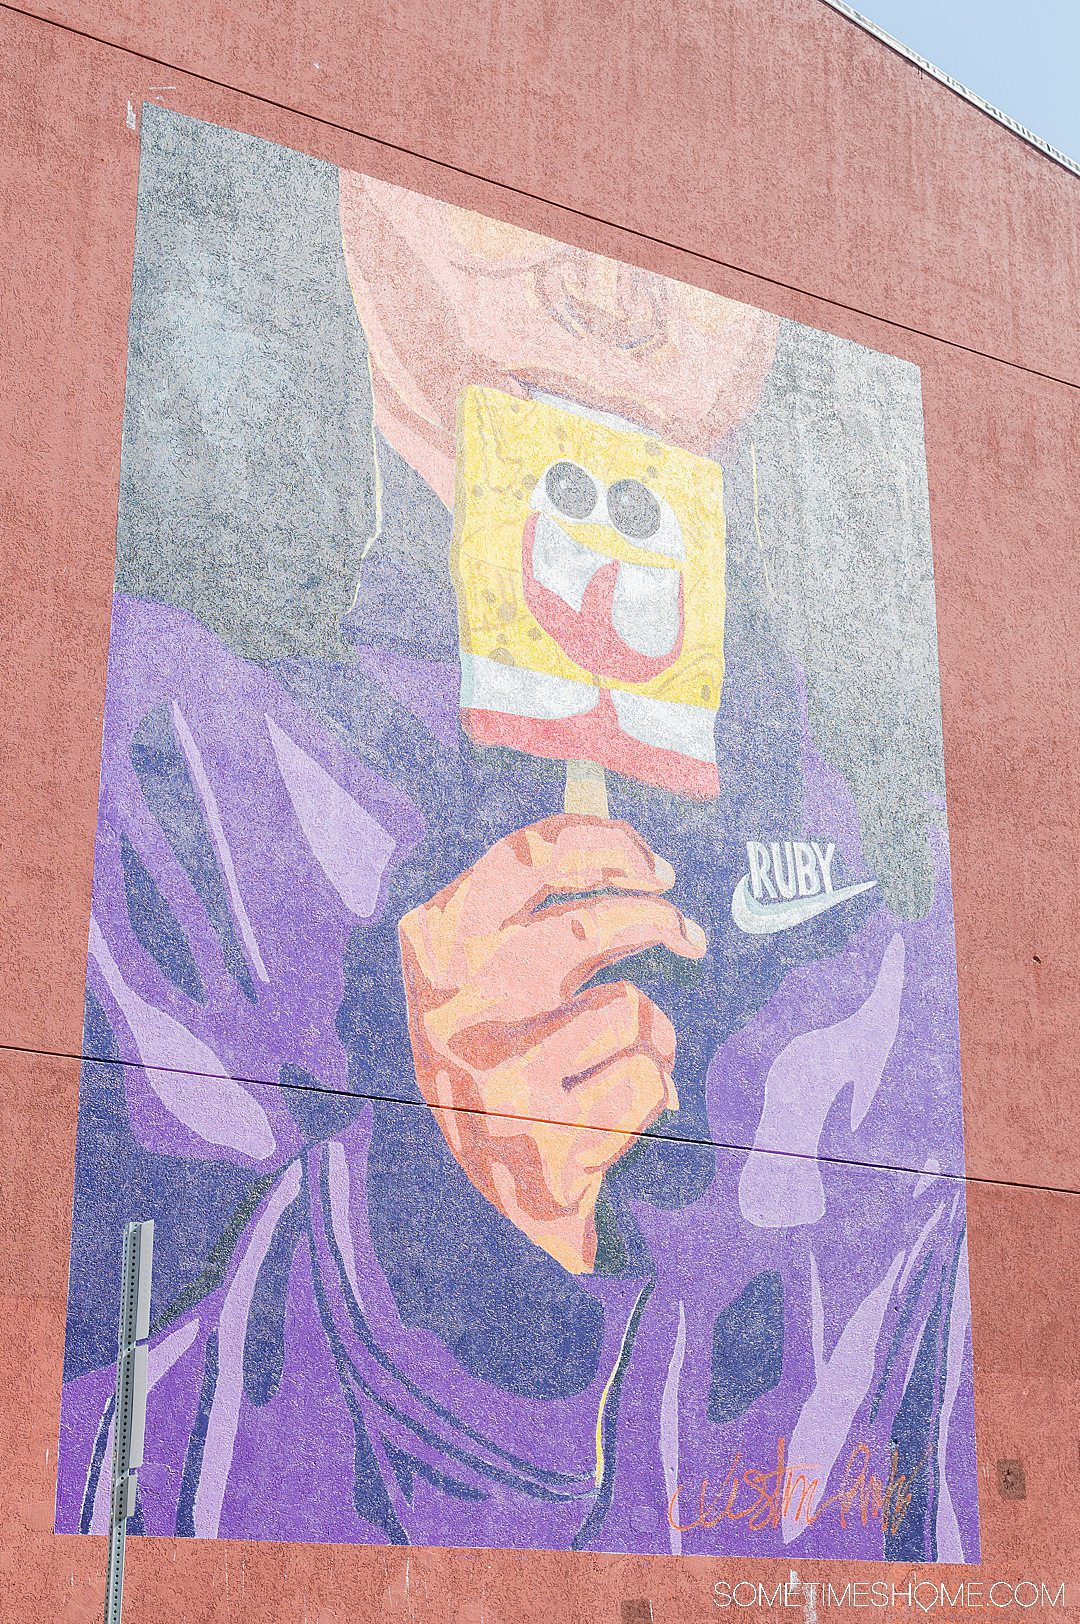 Mural of a person in a purple jacket eating a yellow Sponge Bob pop